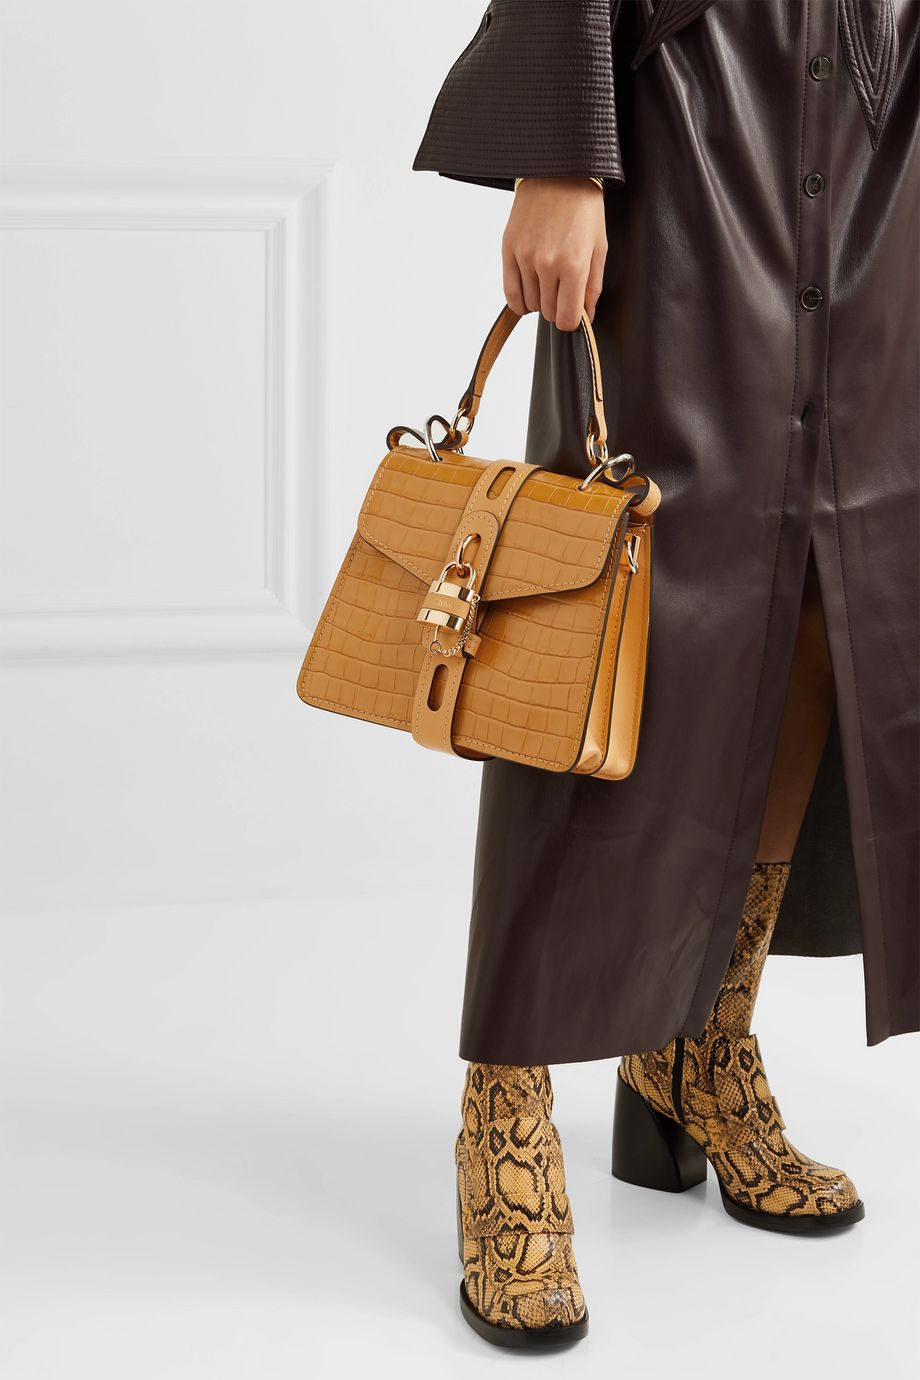 Chloé Aby small croc-effect leather tote